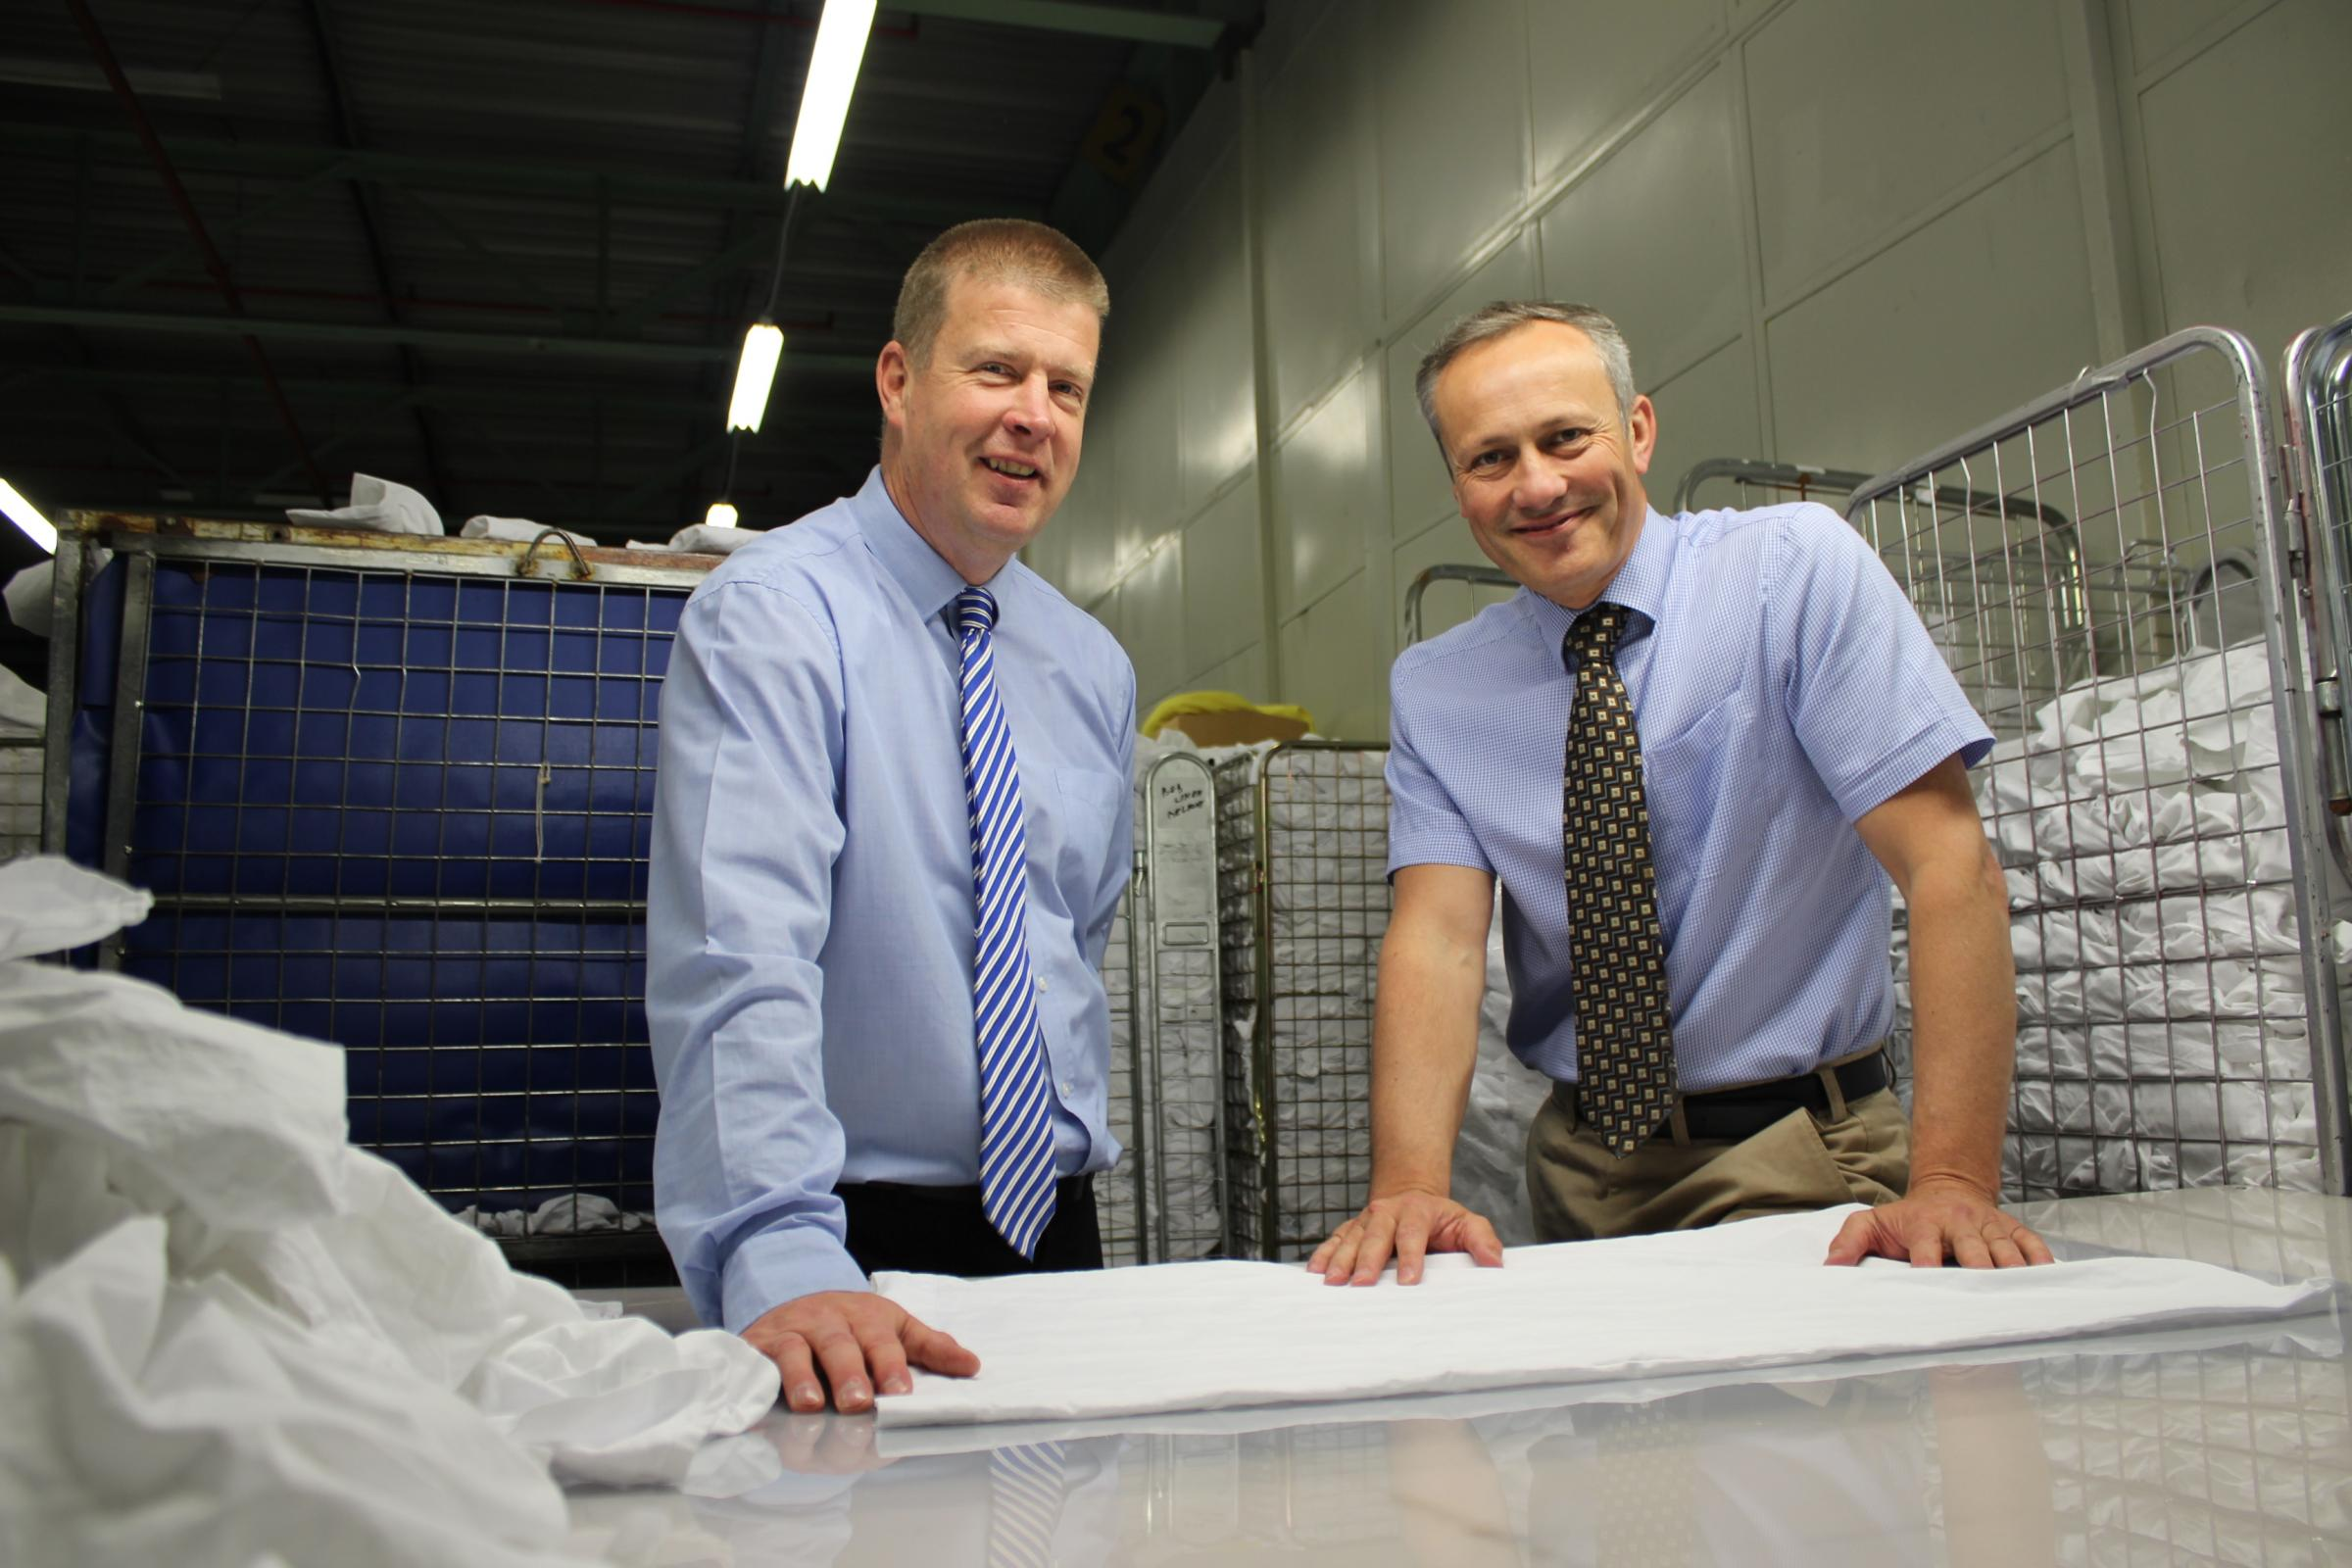 Regenex celebrating successful start to business in cleaning